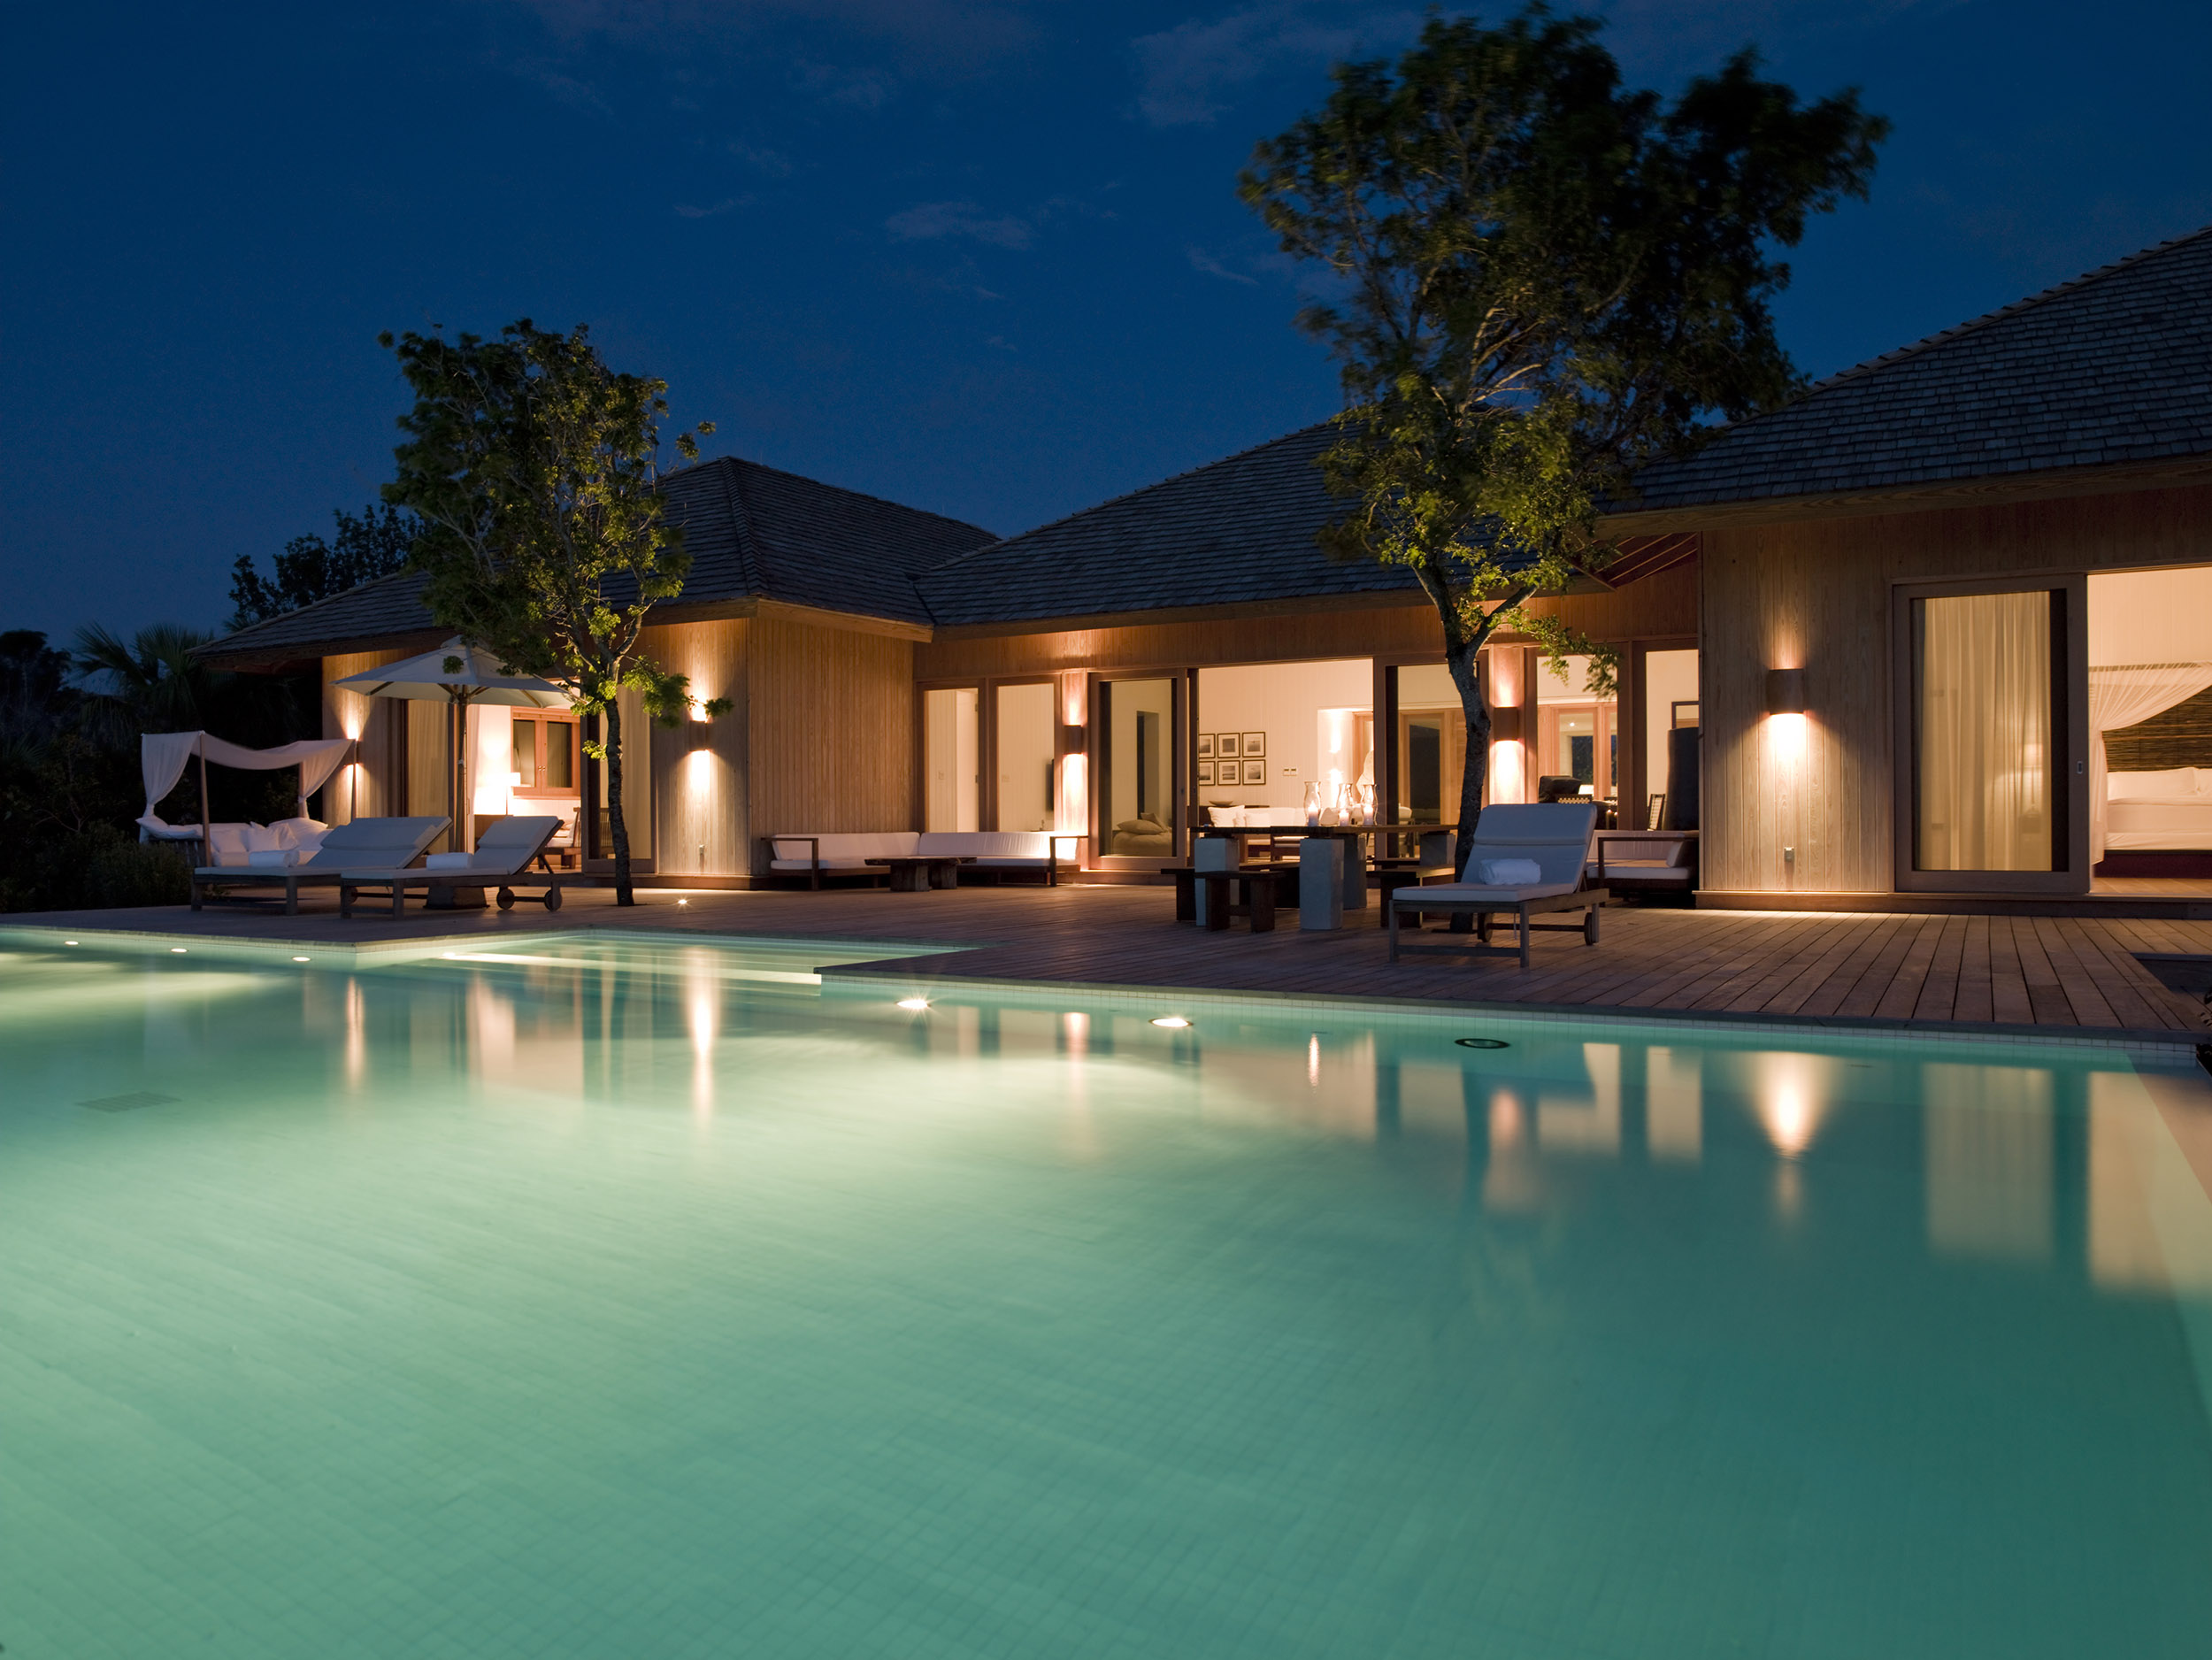 Parrot Cay - evening view of the villa and swimming pool